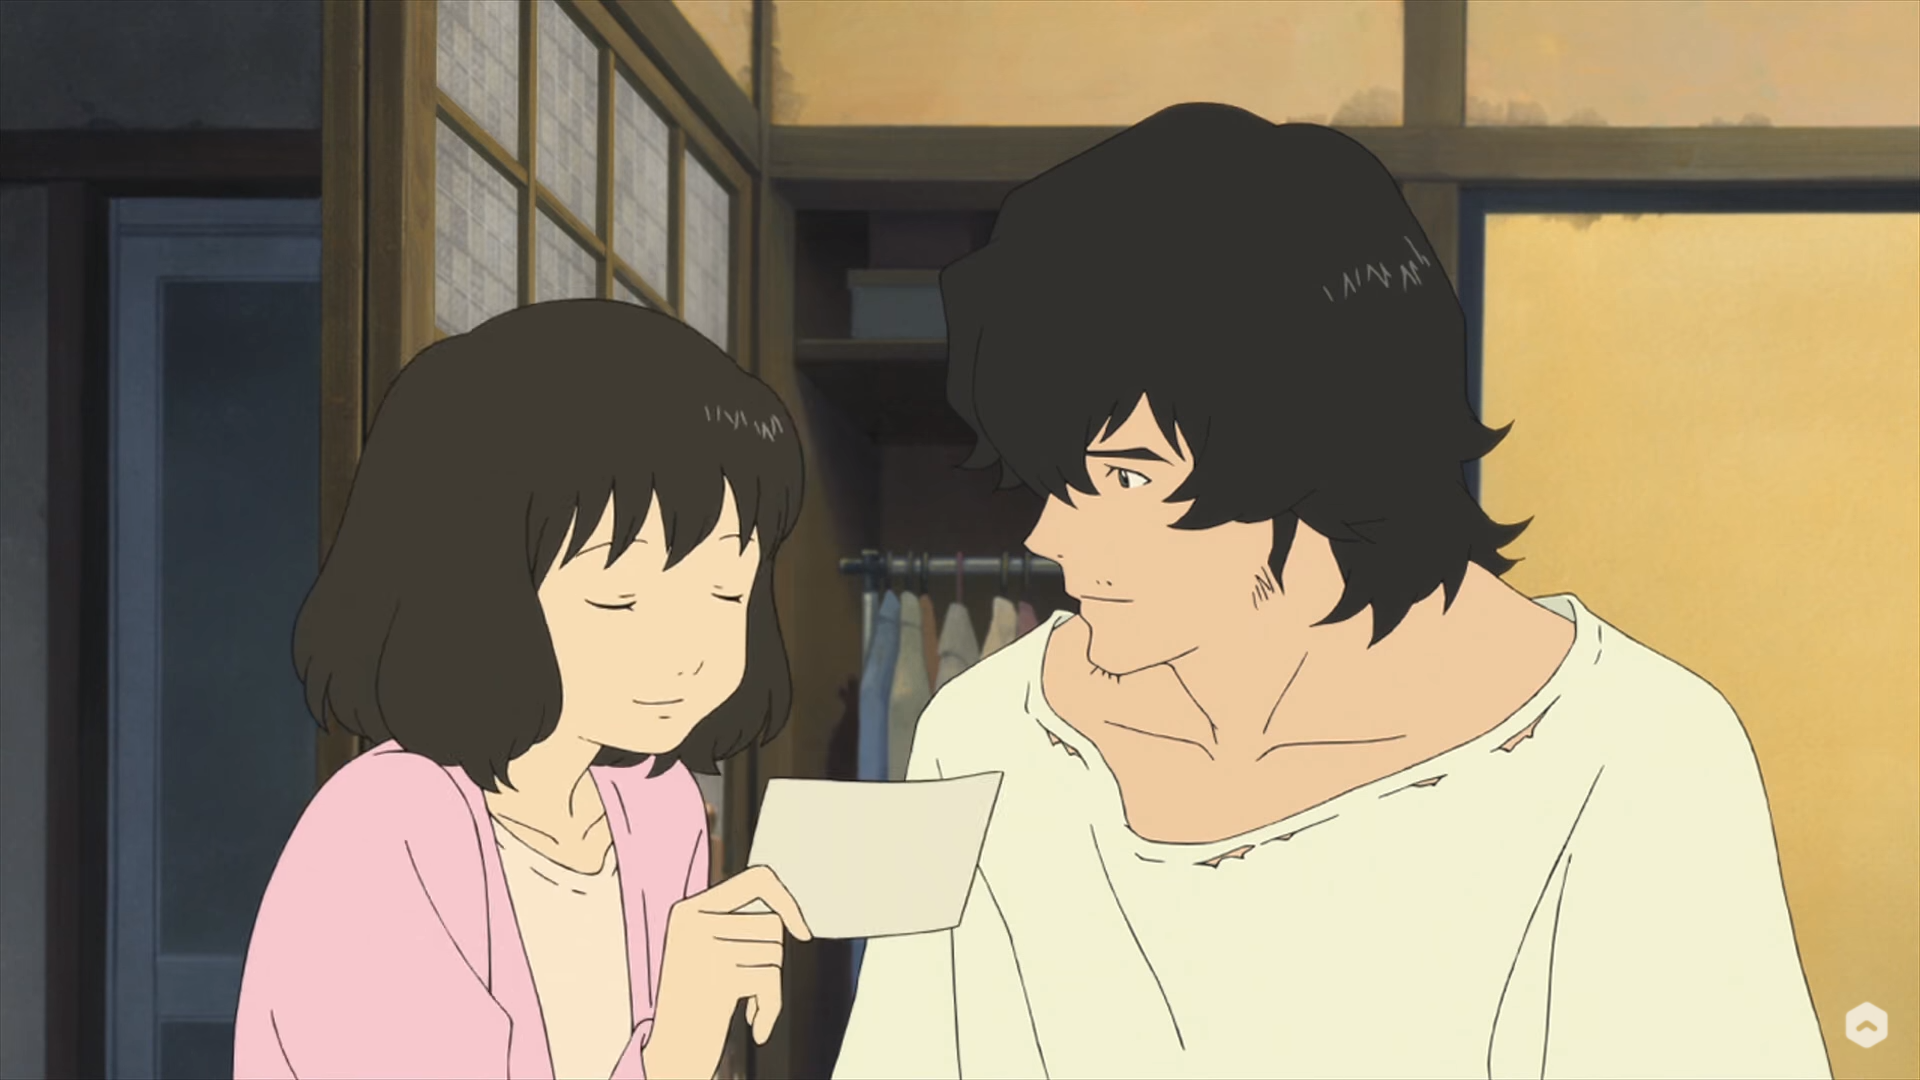 Hana shares a moment with her partner in Wolf Children